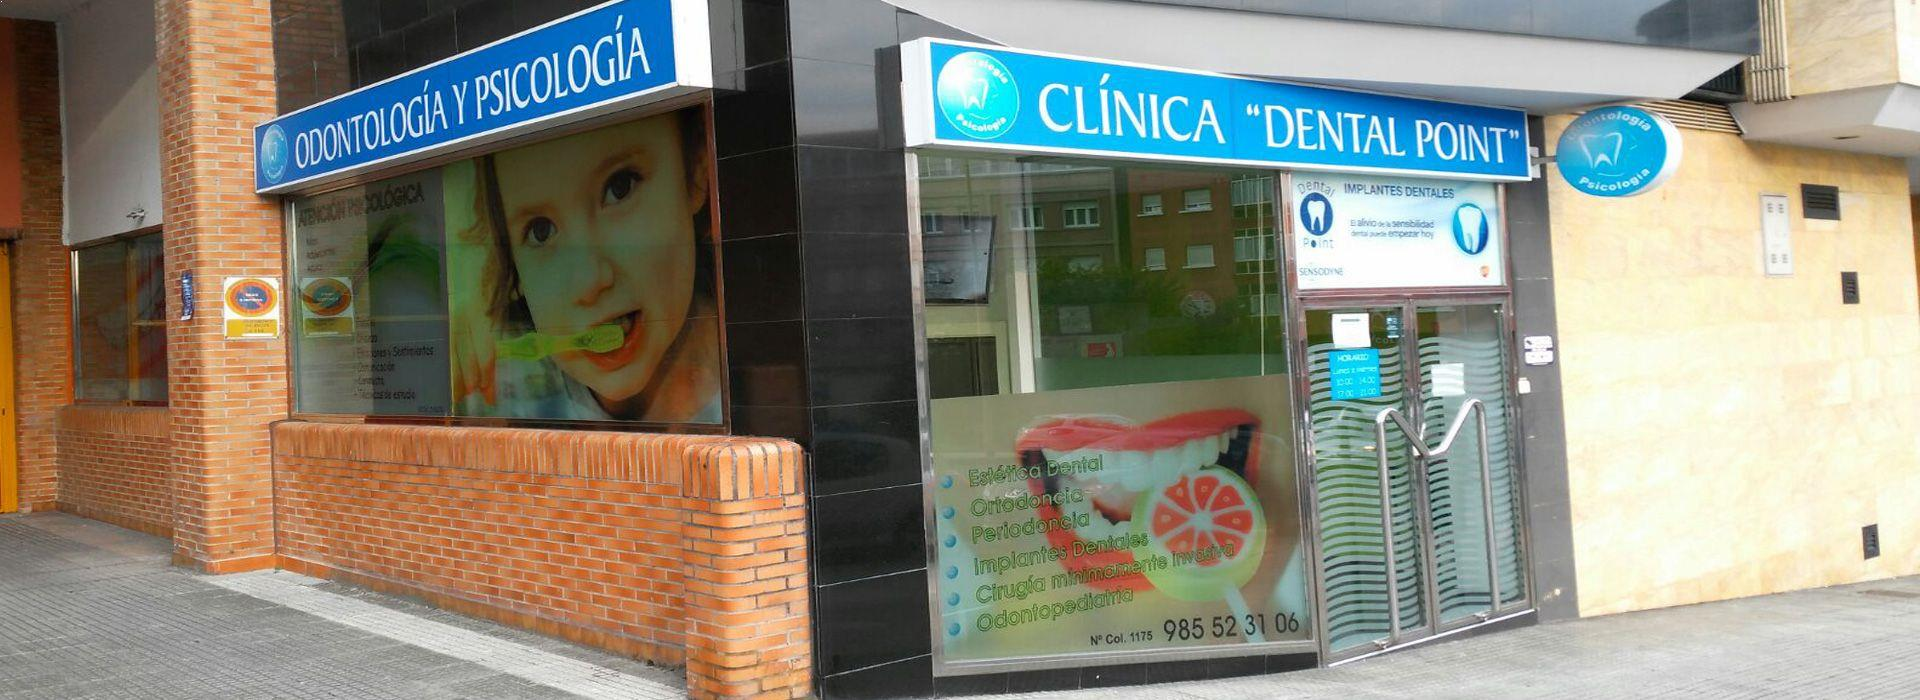 Dentista Asturias, clinica dental point aviles, estetica dental